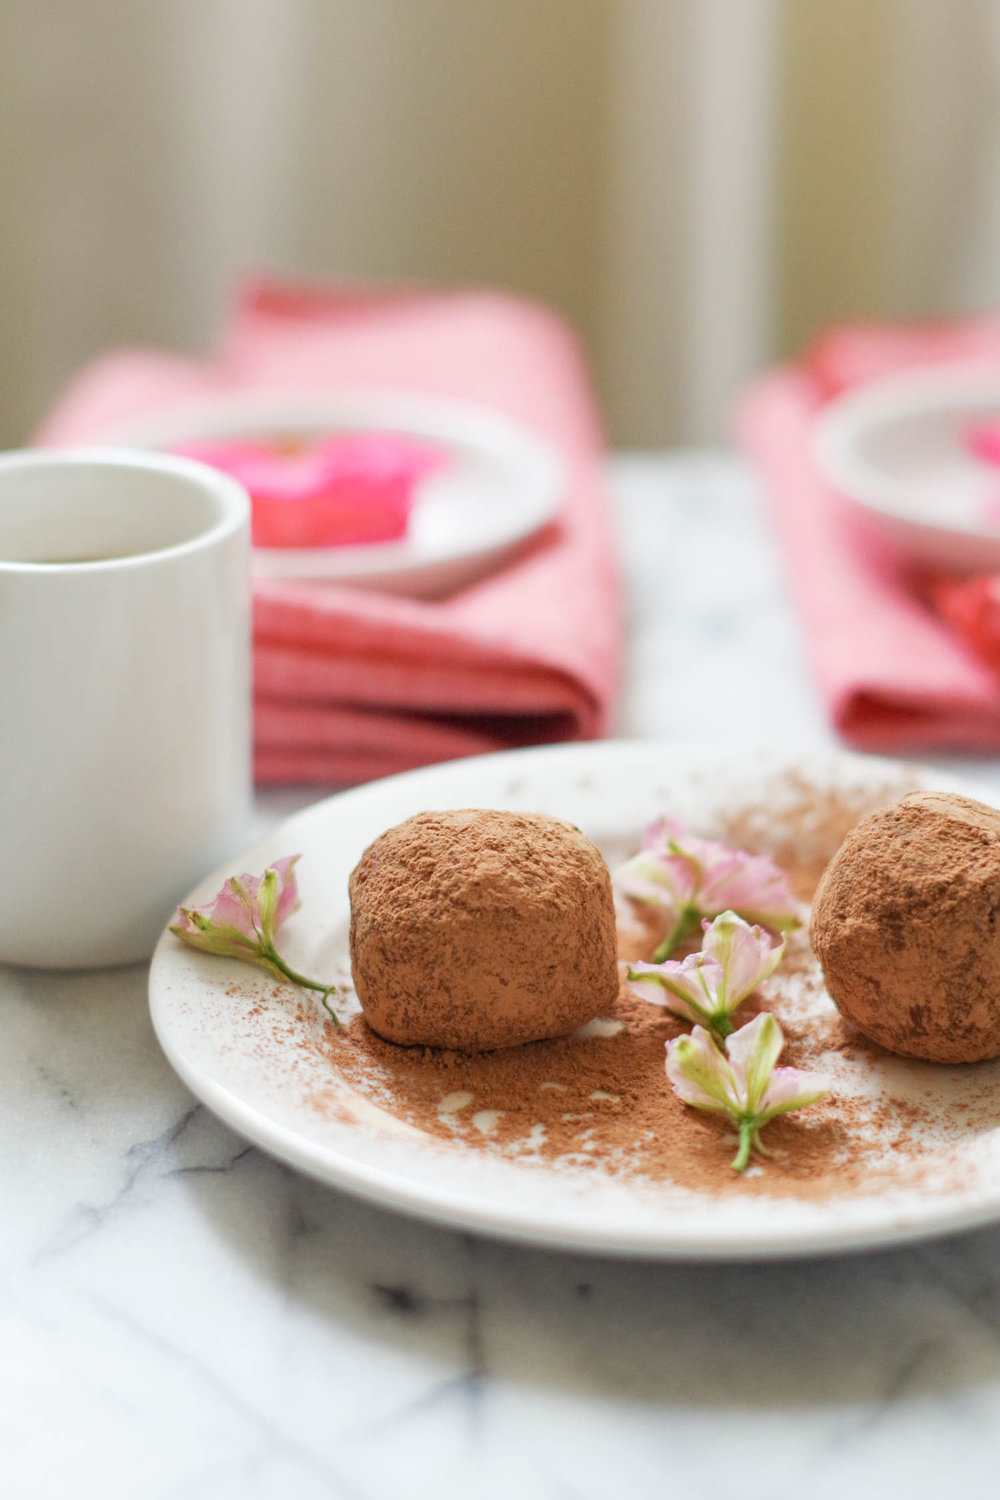 Vegan & Gluten-Free Rum Balls by Kari of Beautiful Ingredient